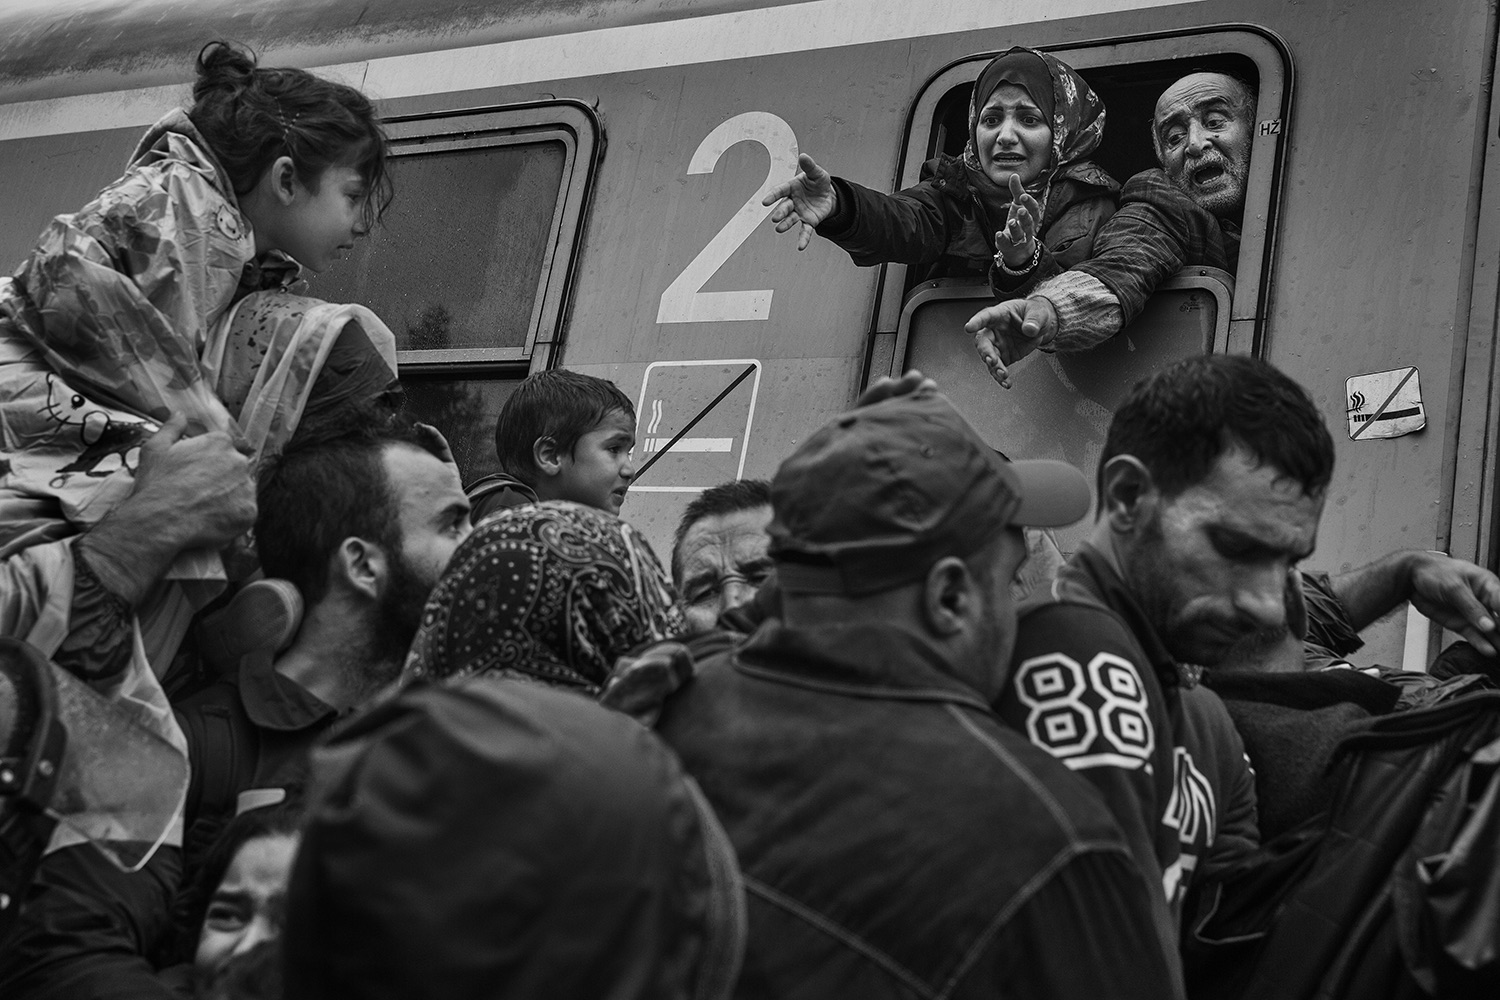 Refugees plead with police officers to let members of their families board the train in Tovarnik, Croatia, Sept. 17, 2015.